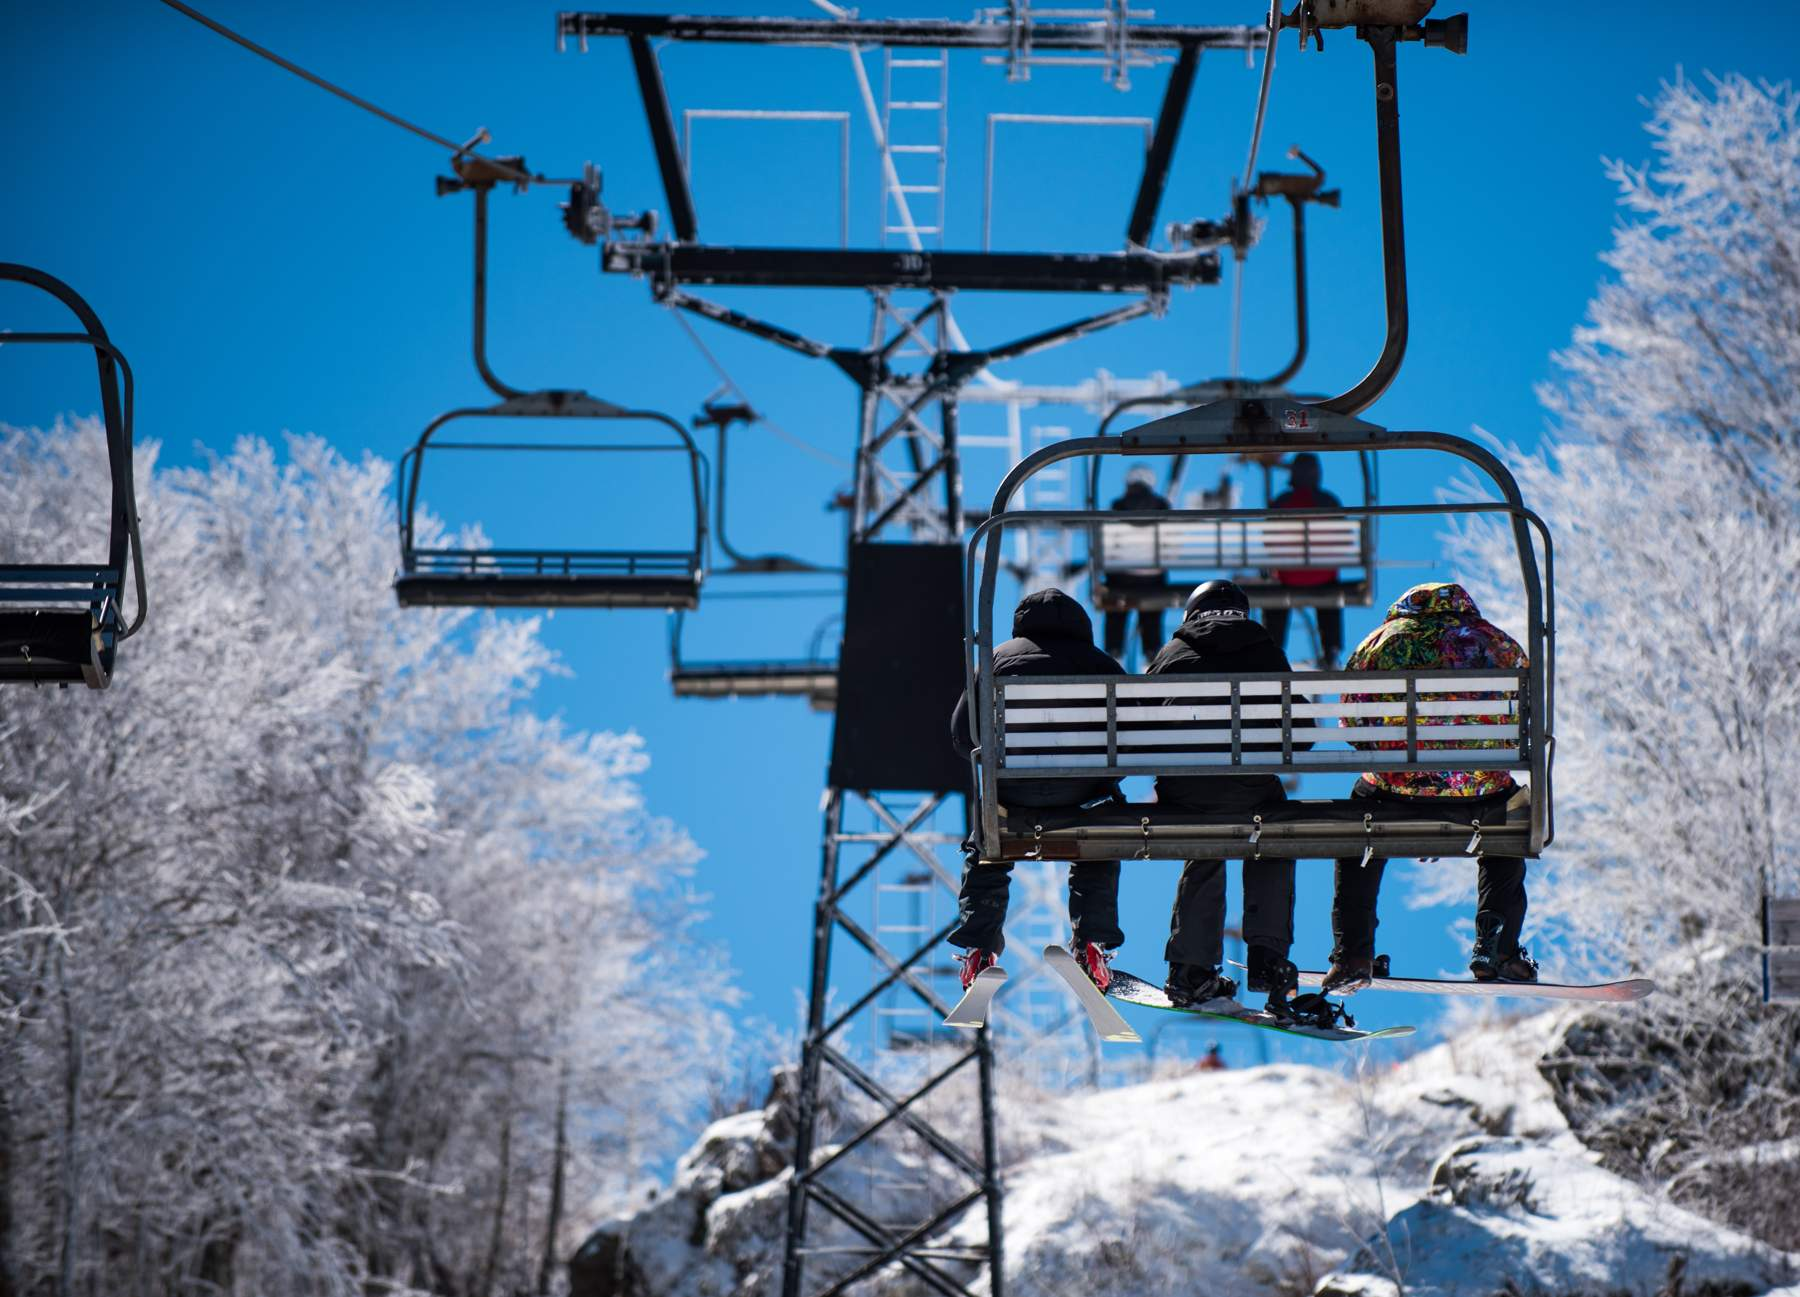 Christmas Village Ski Lift For Sale.Ski Beech North Carolina Skiing Resorts